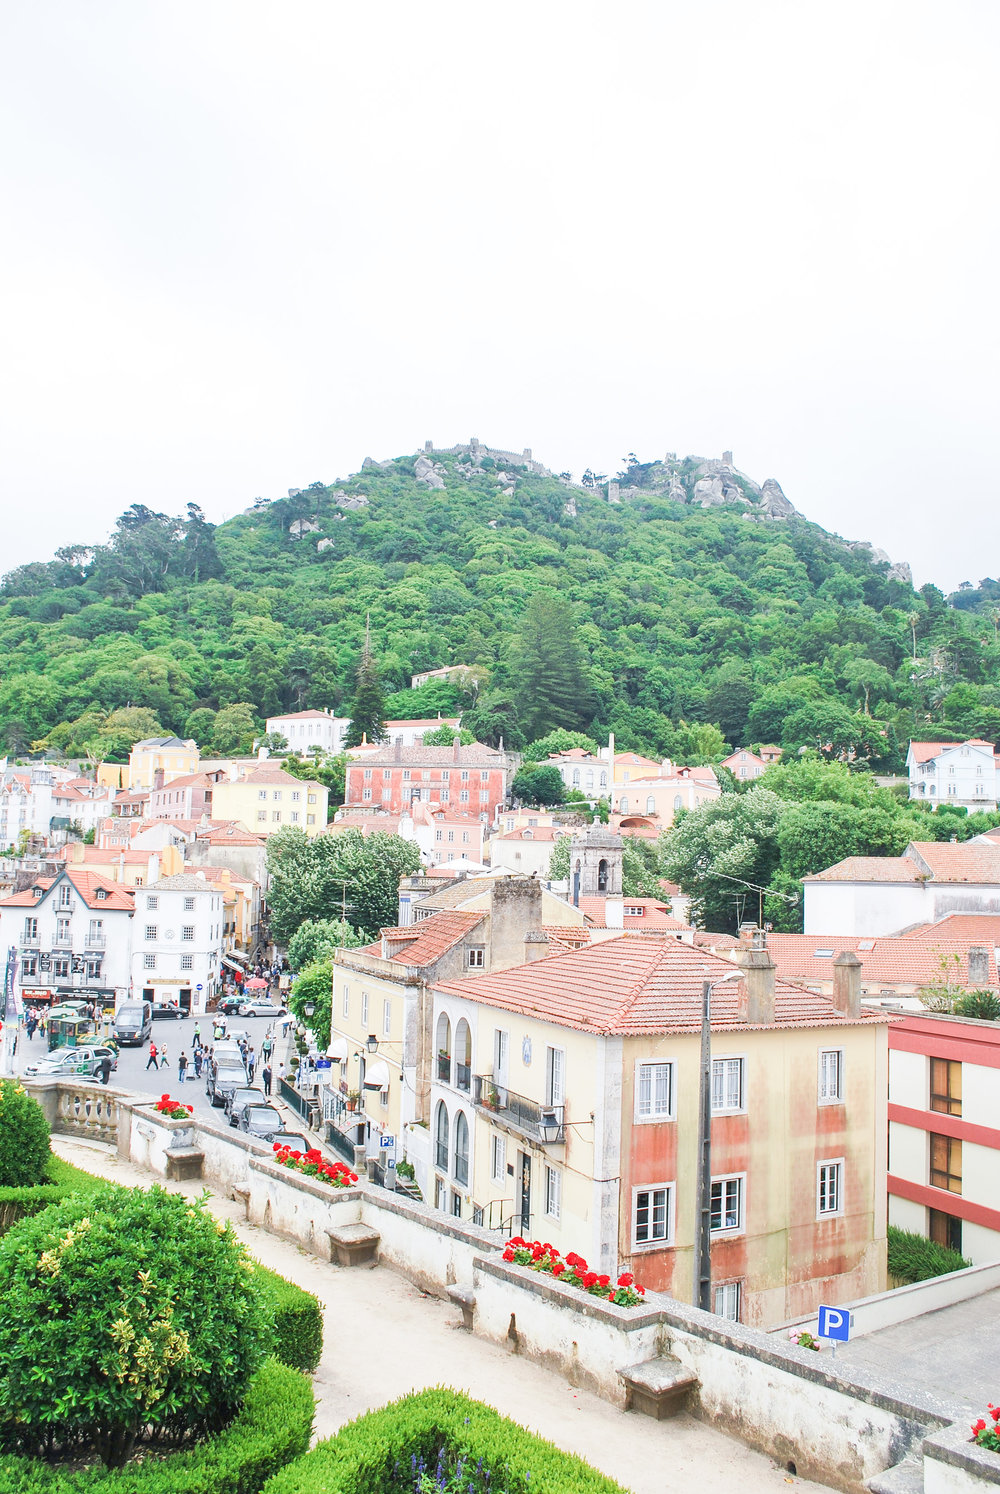 Visiting Lisbon, Portugal? From castles to beaches to wine country, here are 9 day trips to put on your Portugal itinerary!